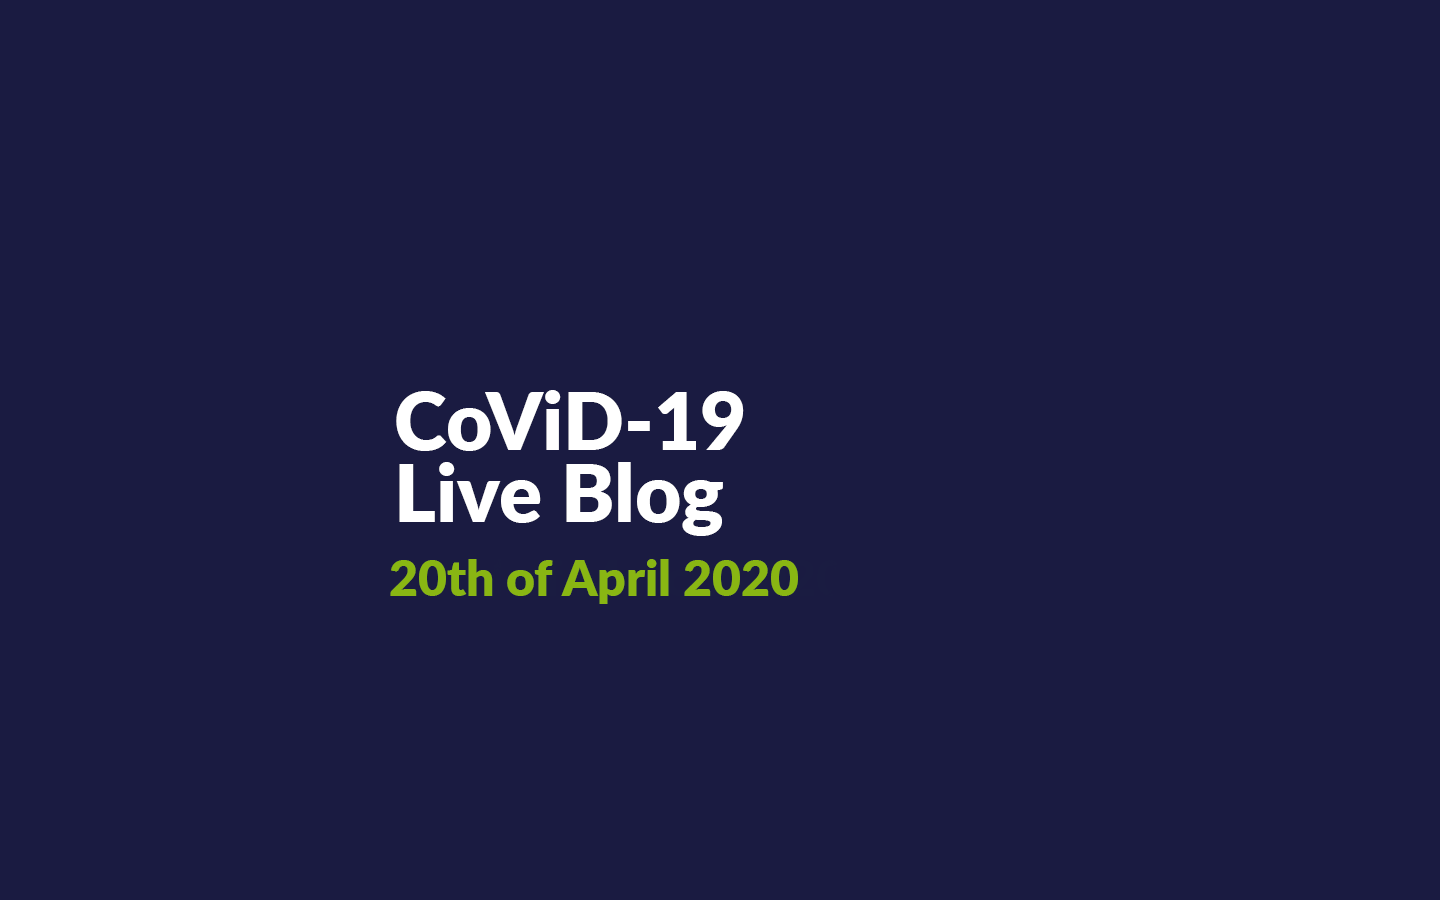 04-20-2020 | Live Blog for CoViD-19 Updates in Germany in English